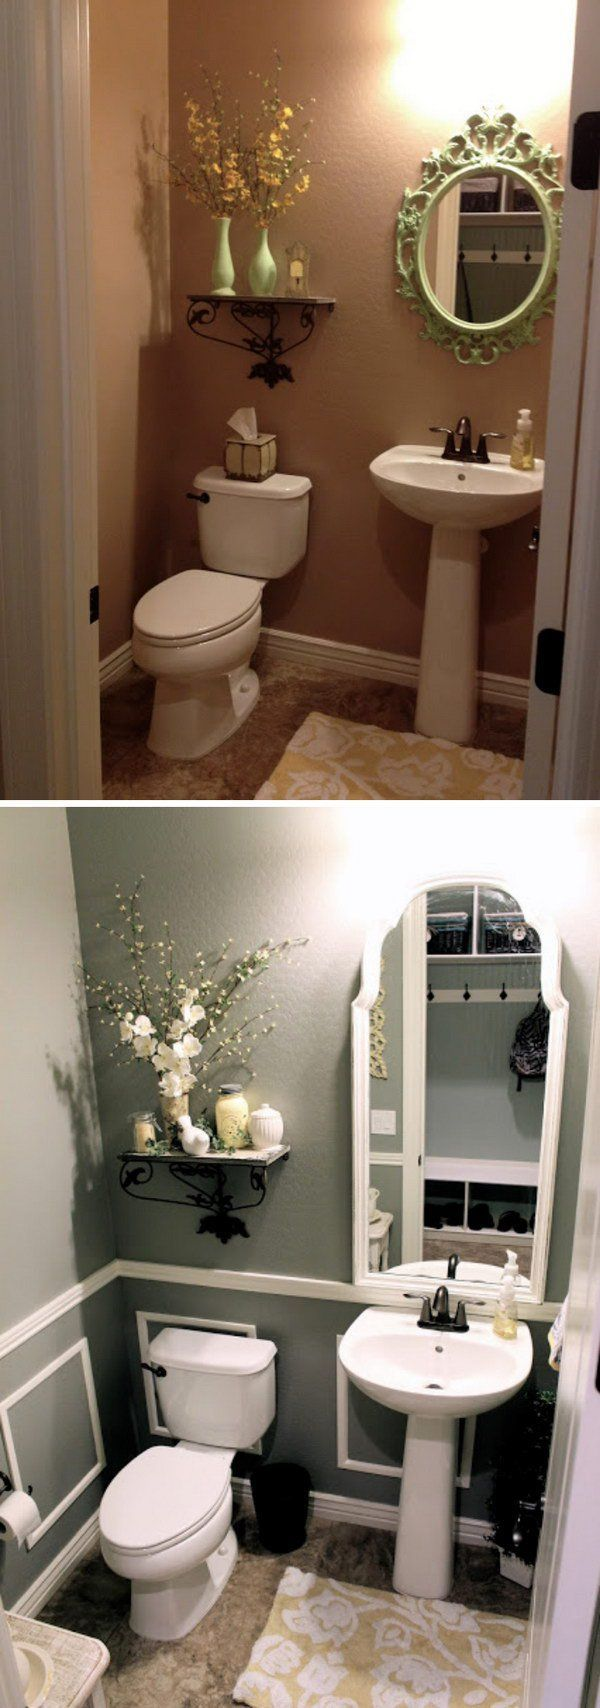 Superbe Thrifty Bathroom Makeover: Beauty On A Budget Gray And White